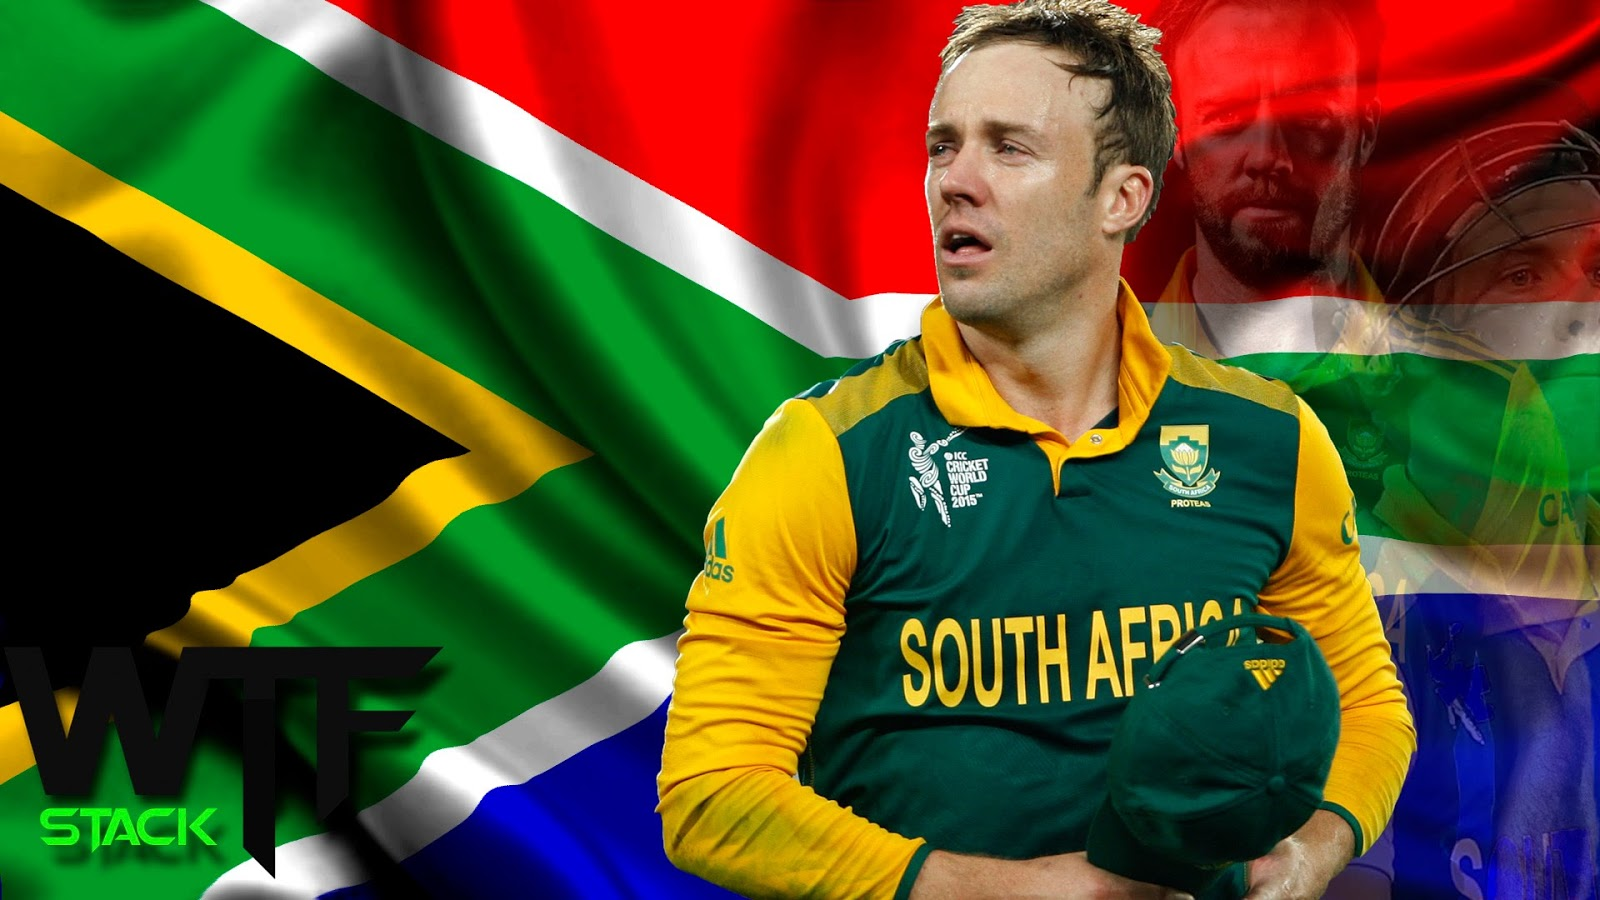 50 ab de villiers photo gallery and hd wallpaper free